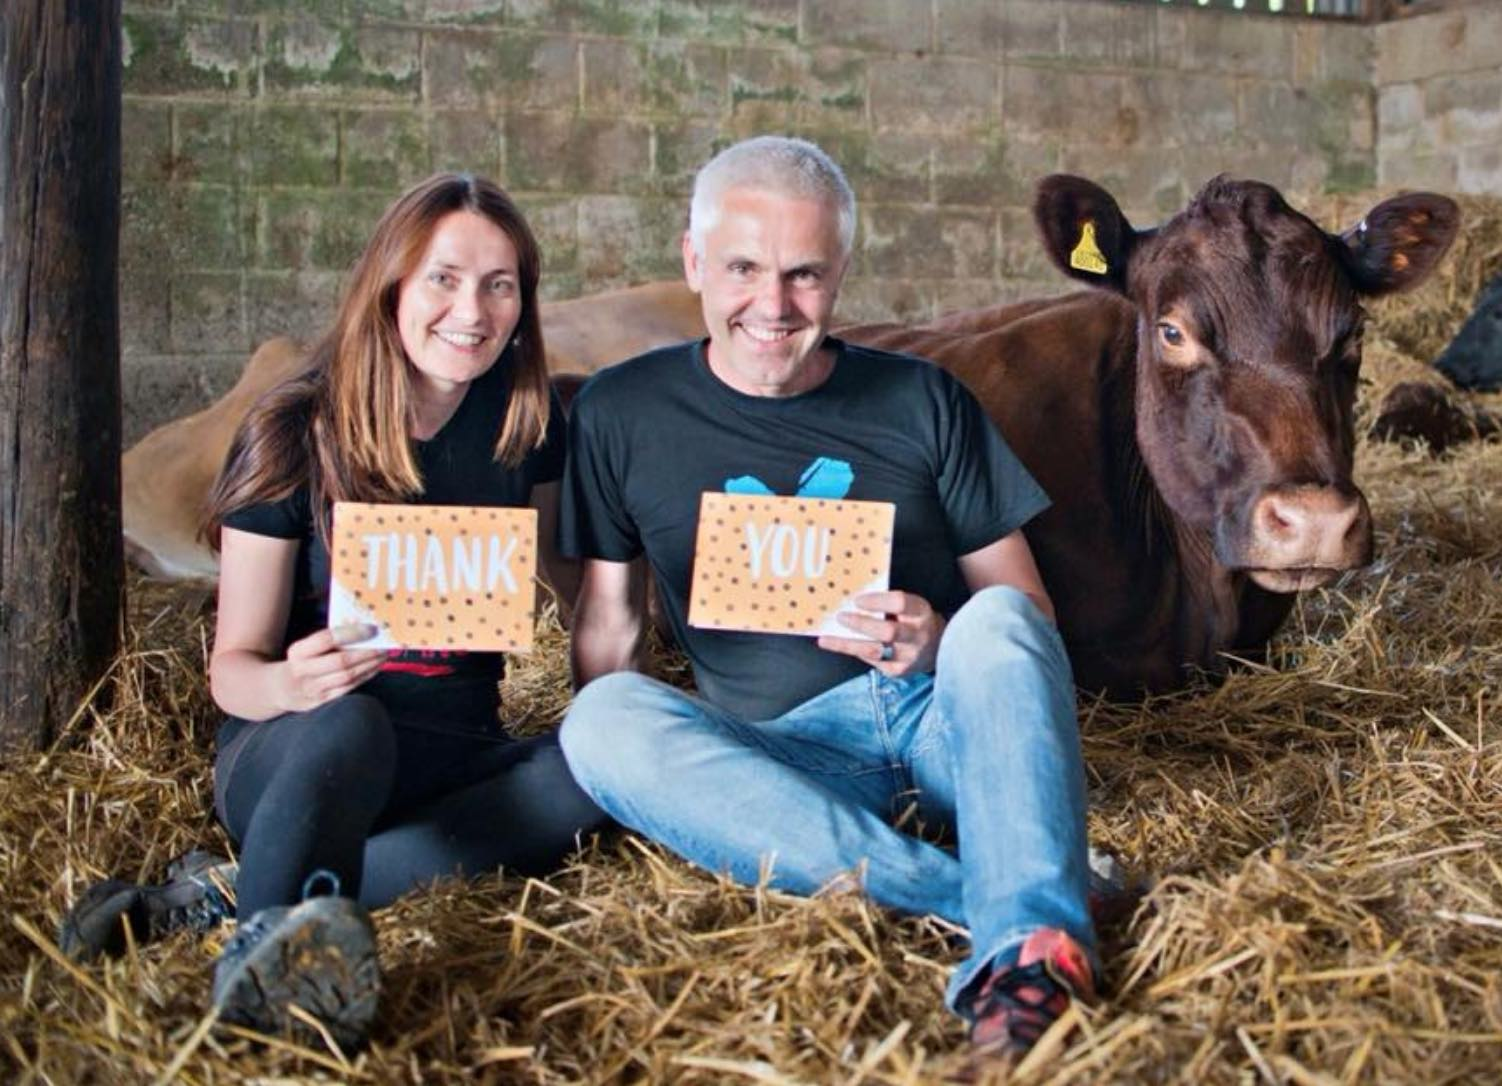 Veganuary Founders Matthew Glover and Jane Land